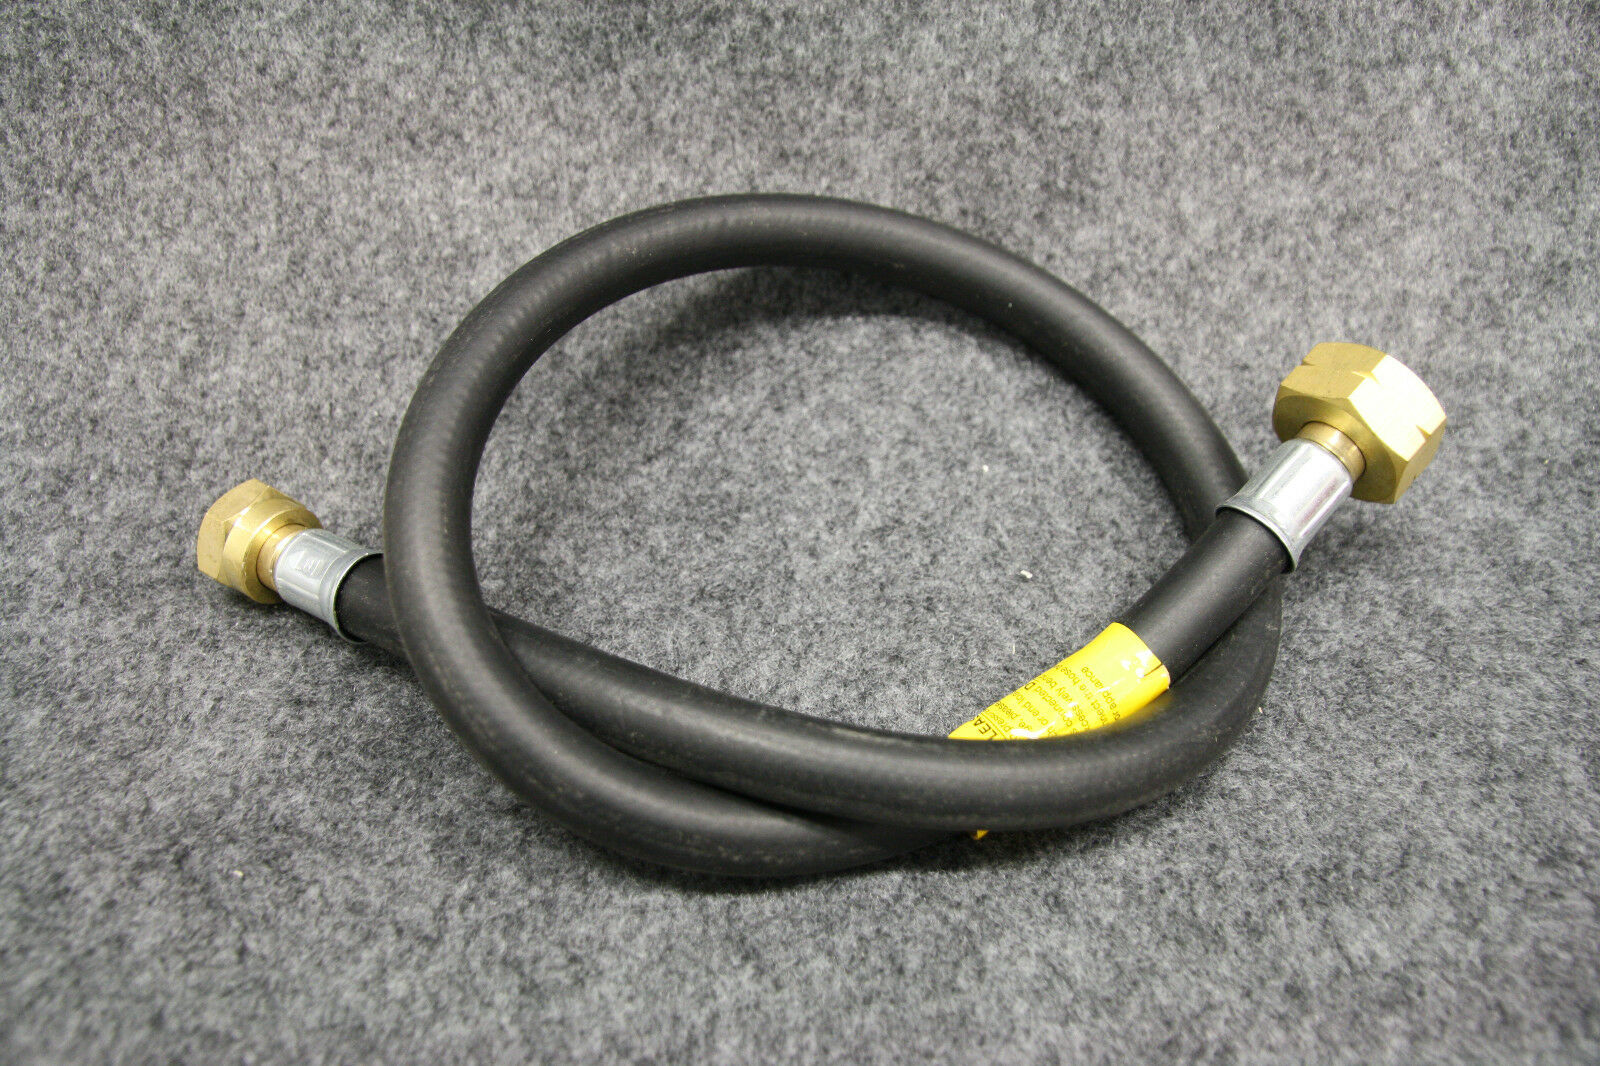 450mm Butane Cylinder Pigtail - to Suit Calor Gas, Fits Truma Regulator/Similar 2